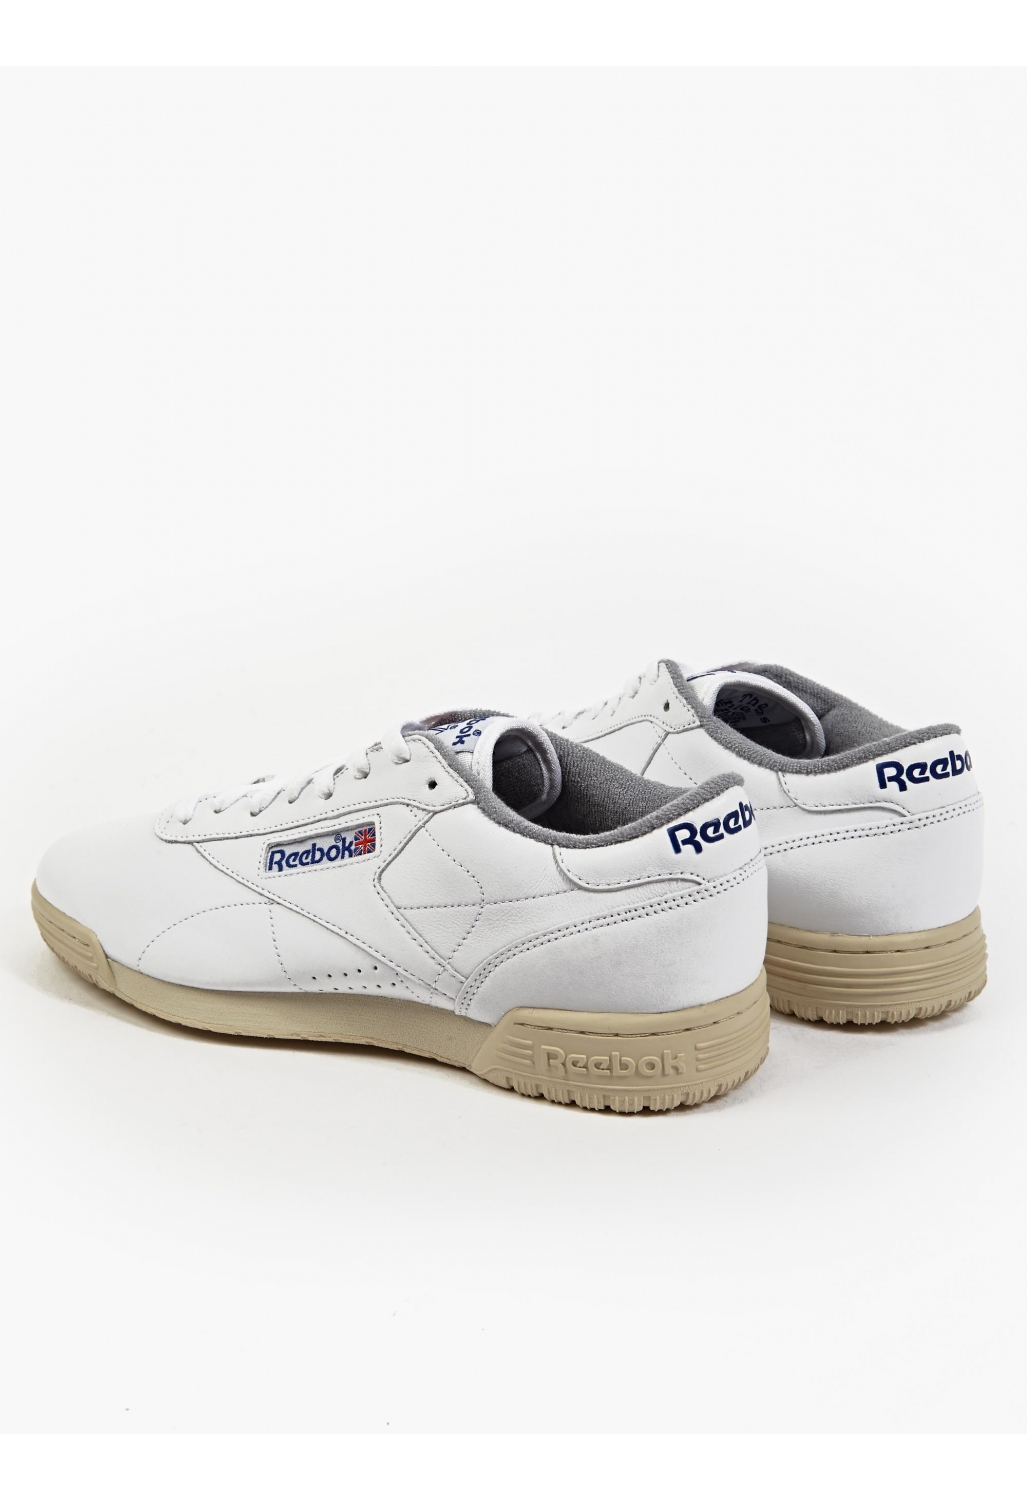 reebok shoes cleaning backgrounds hd abstract